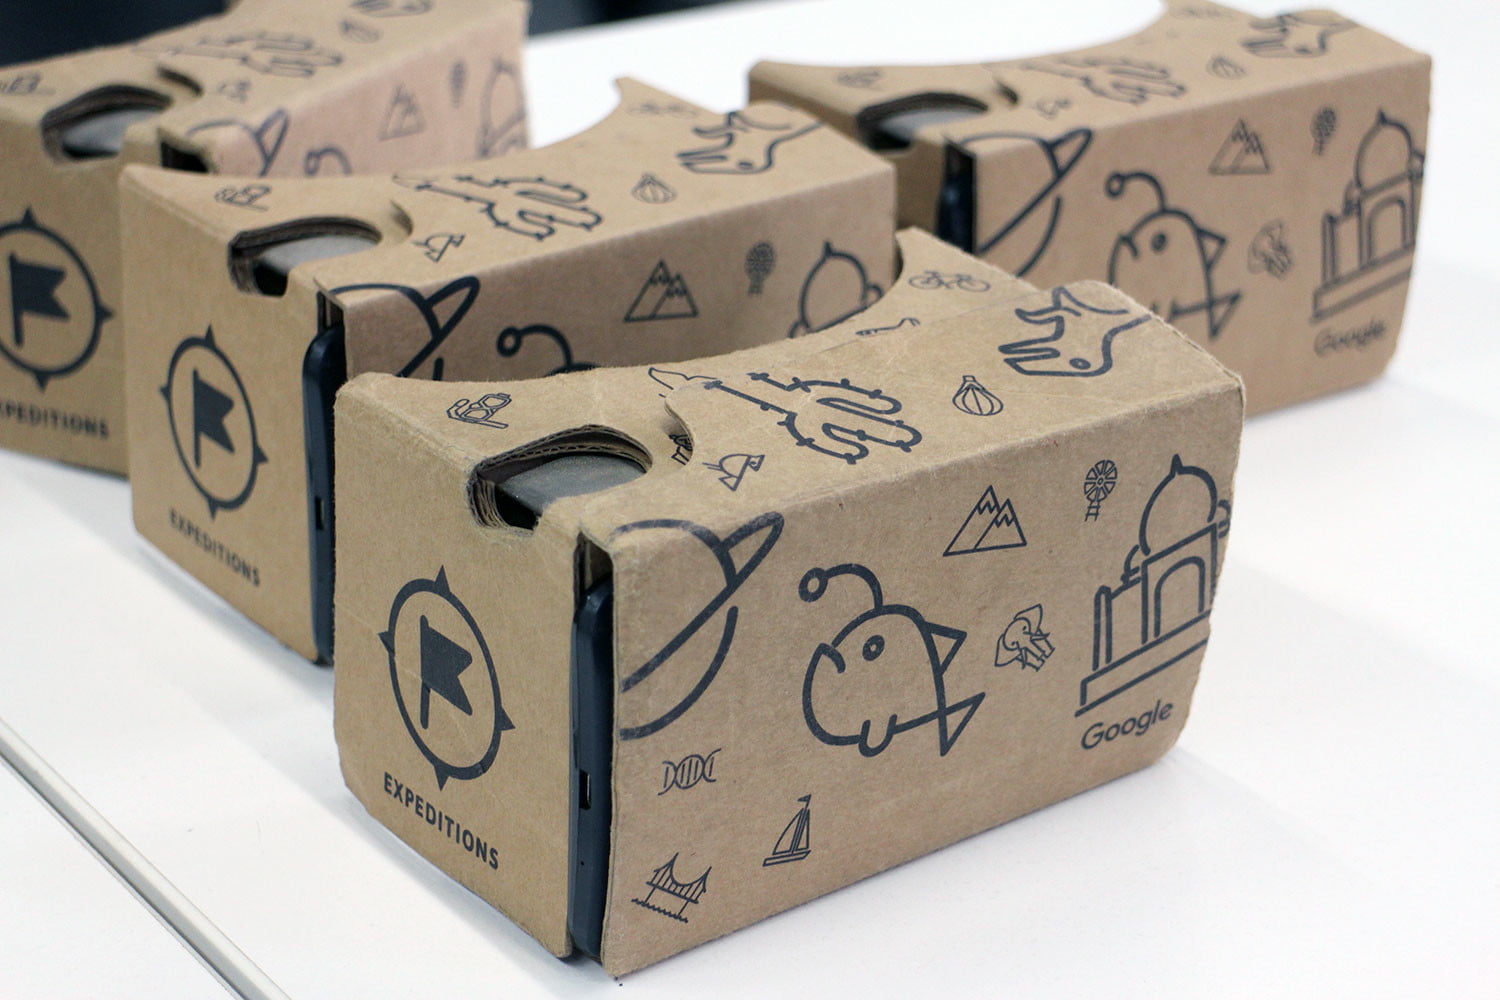 Google Expeditions boxes